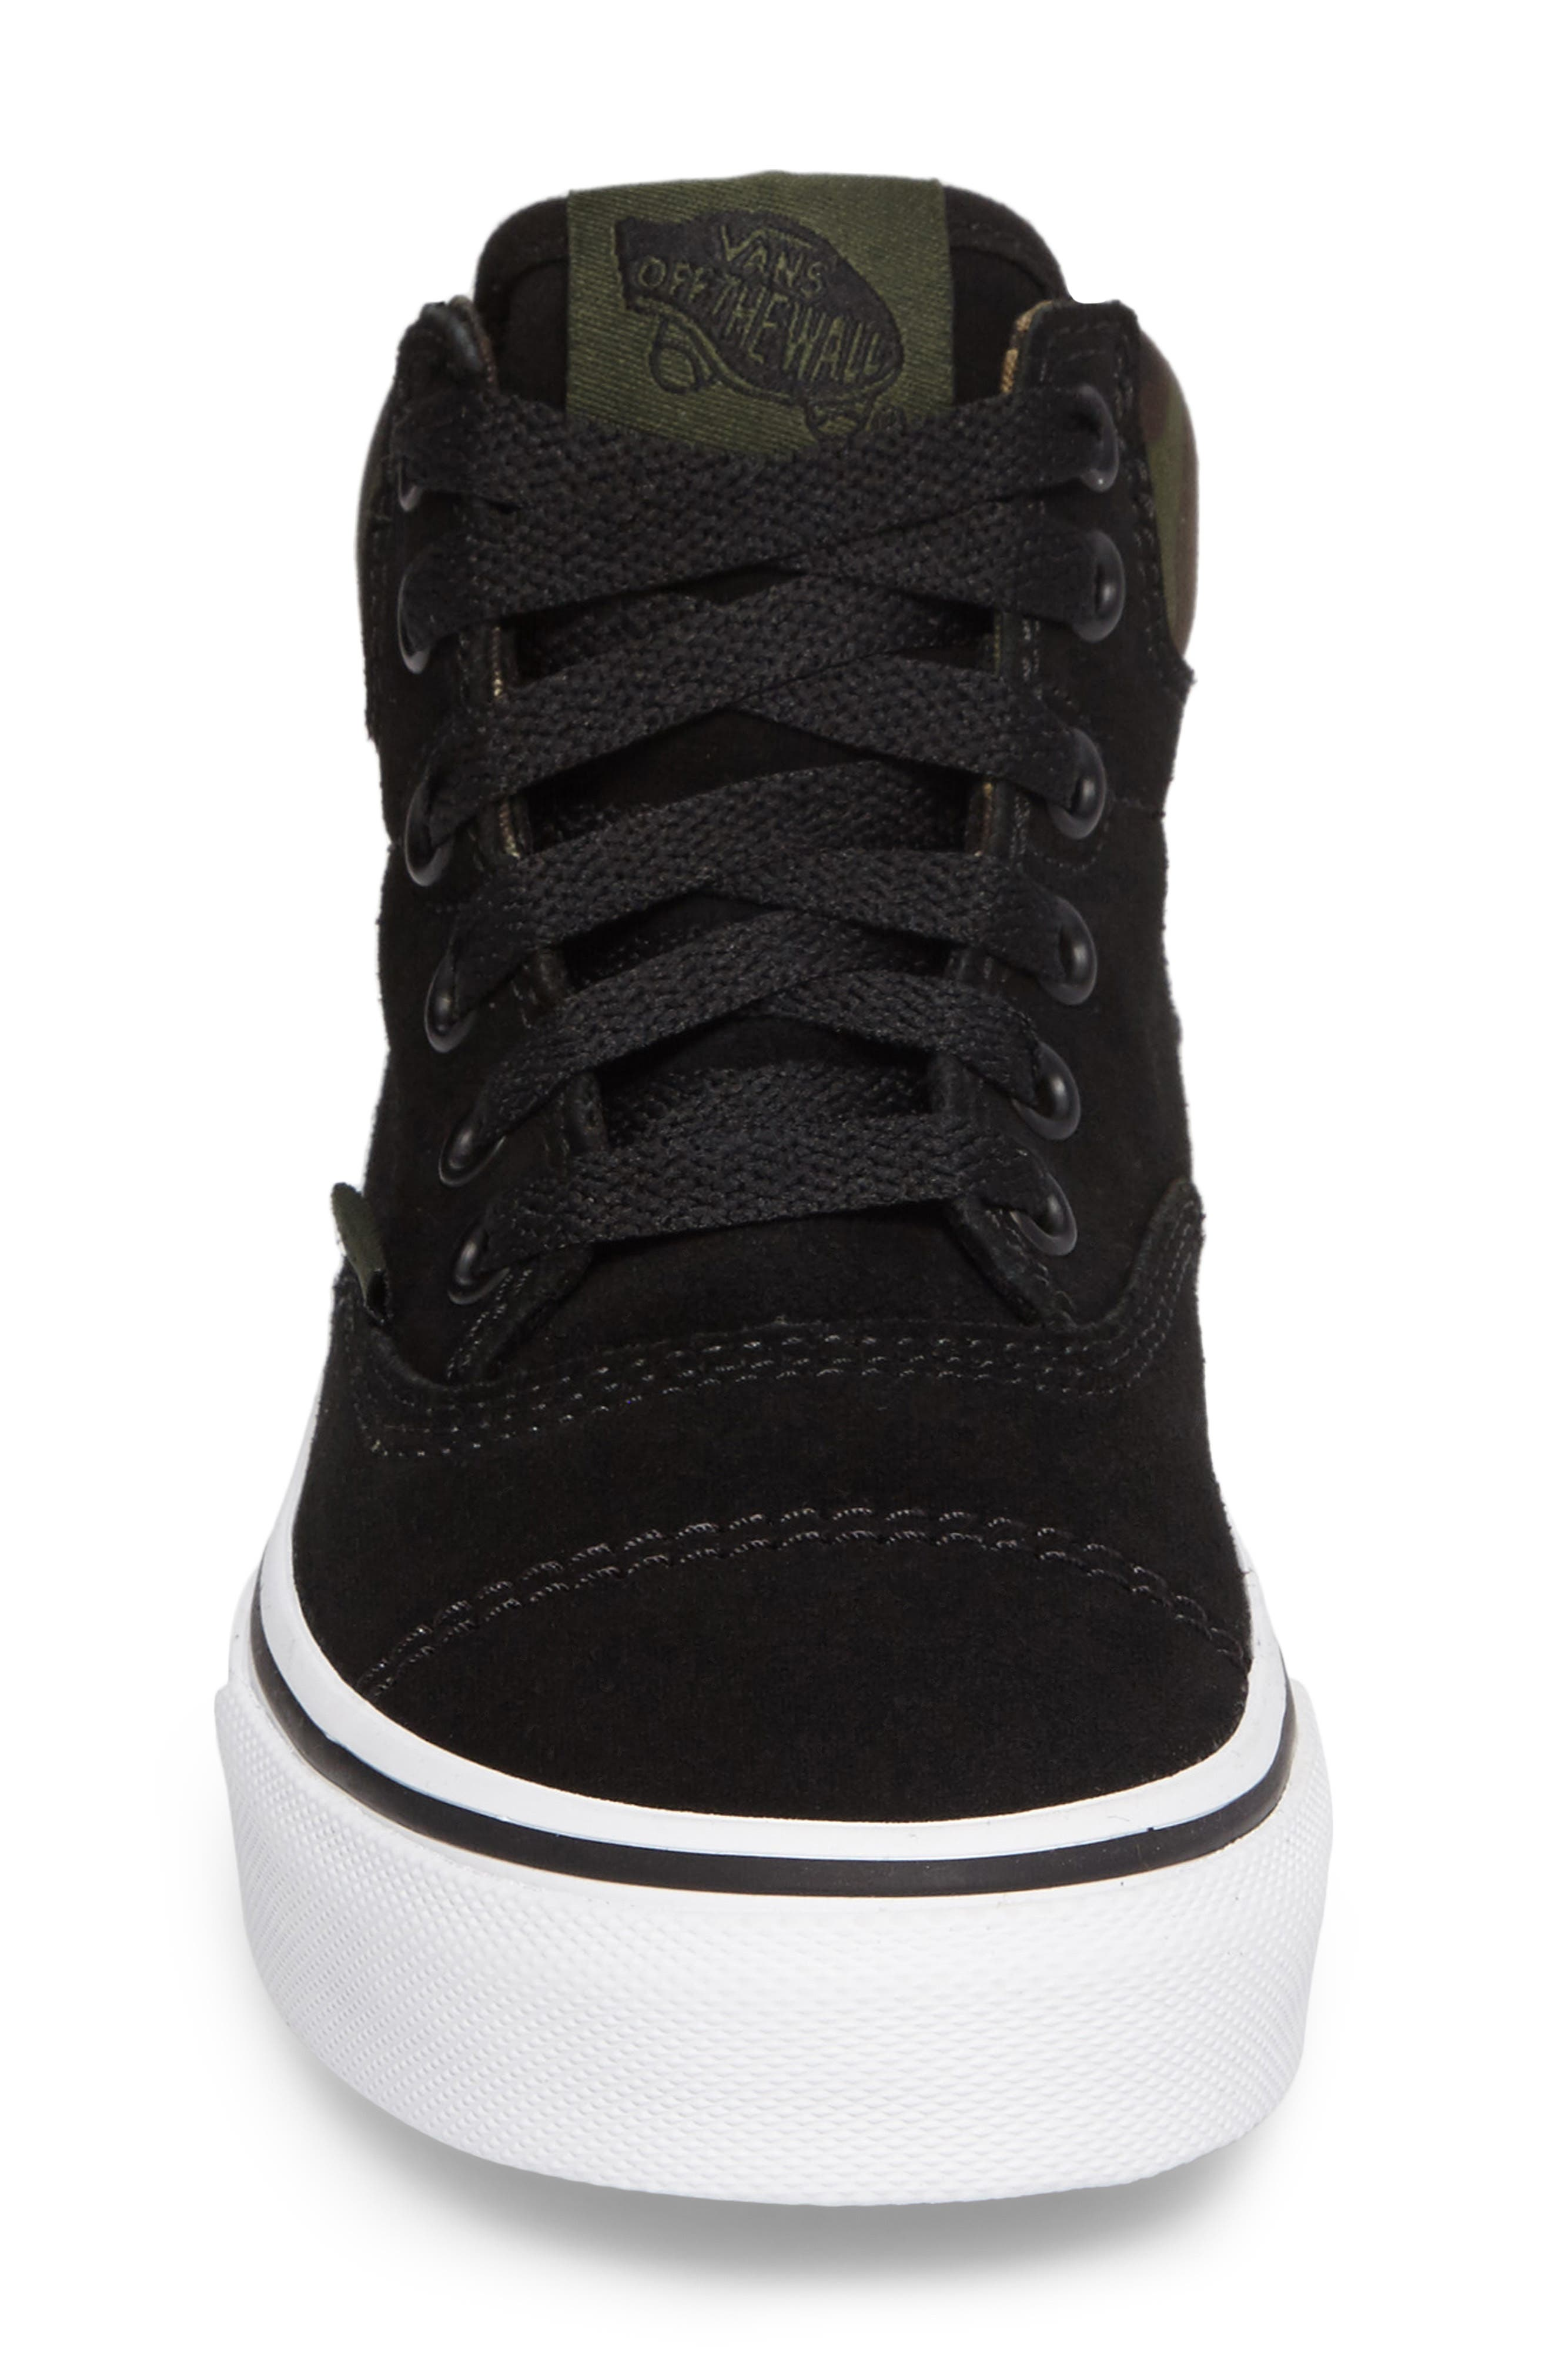 Era - Hi Sneaker,                             Alternate thumbnail 4, color,                             Classic Camo/ Black Suede